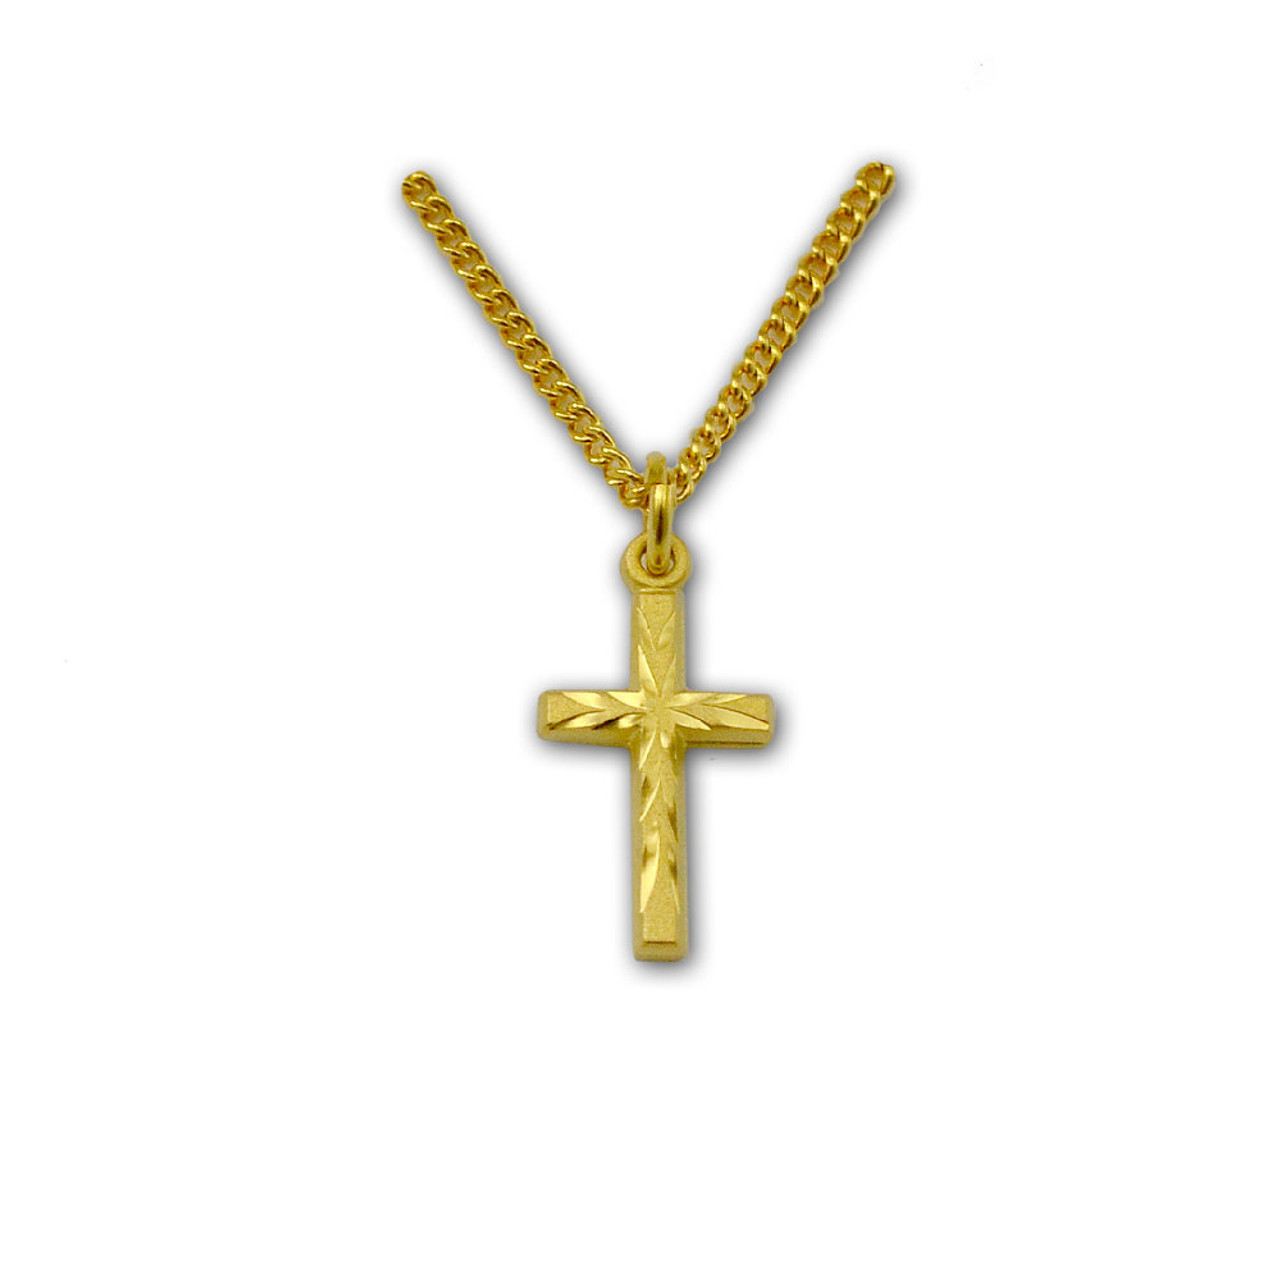 Engraved Gold Cross Baby Necklace